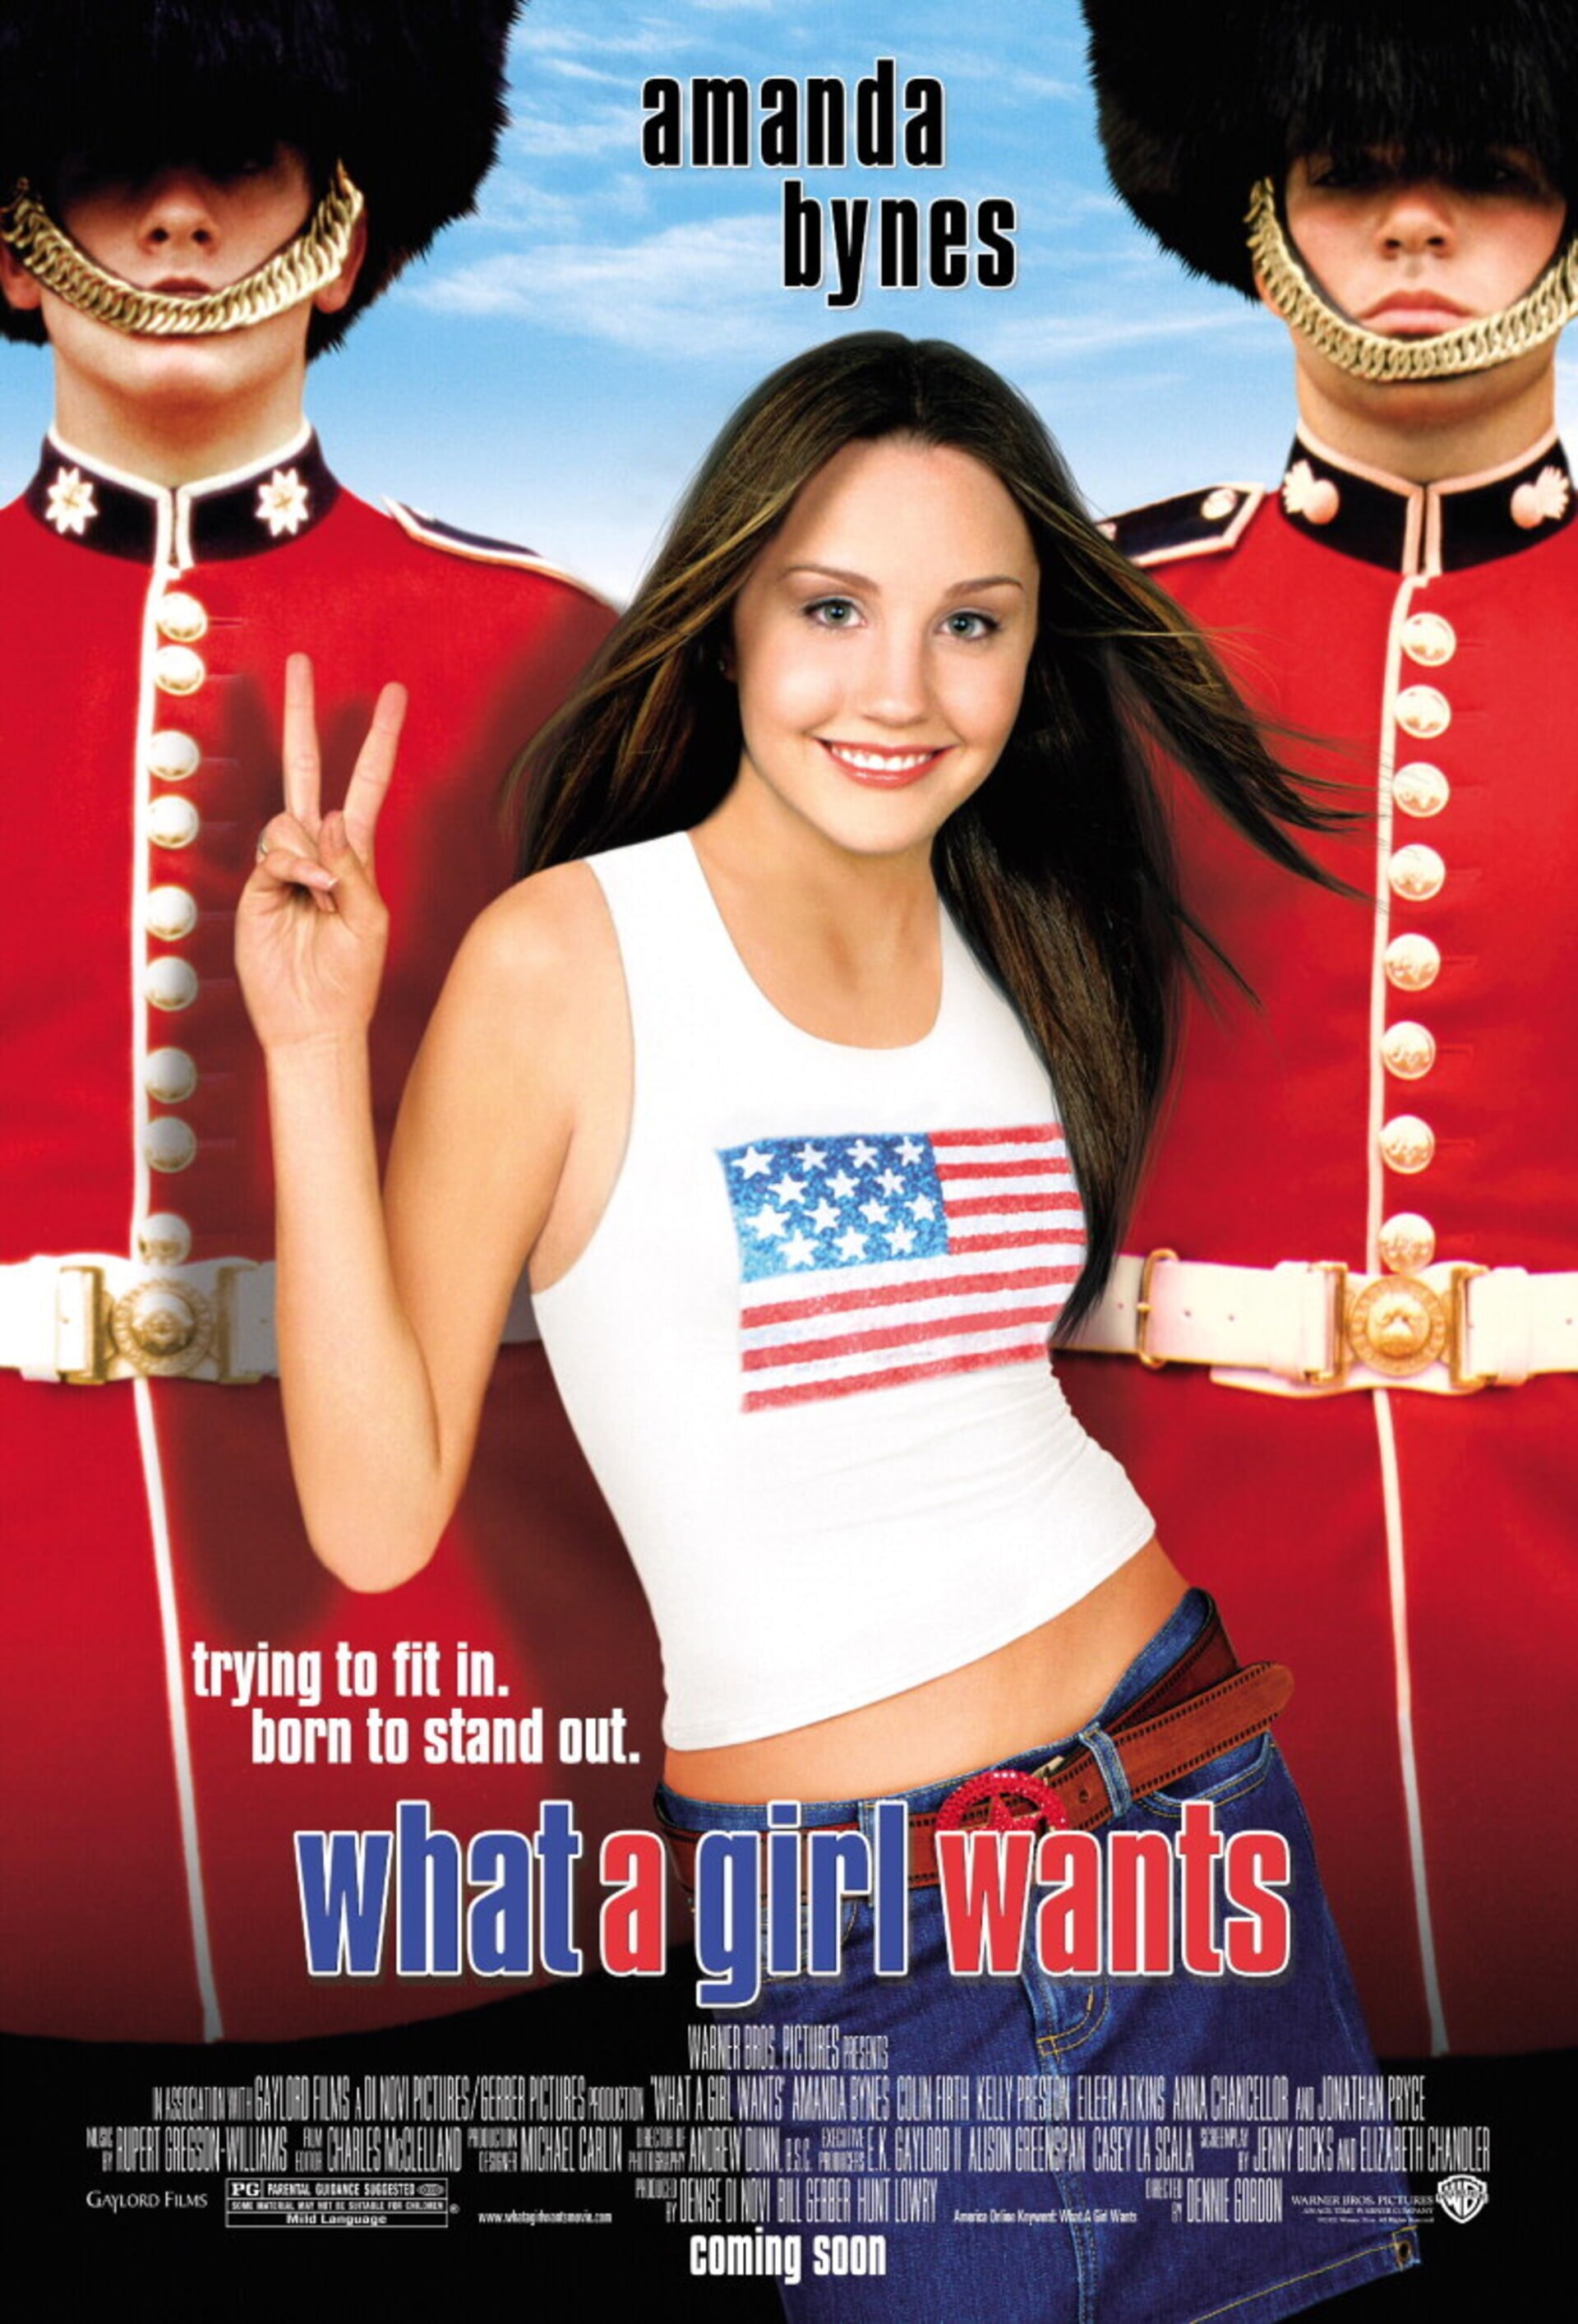 What a Girl Wants - Poster 1